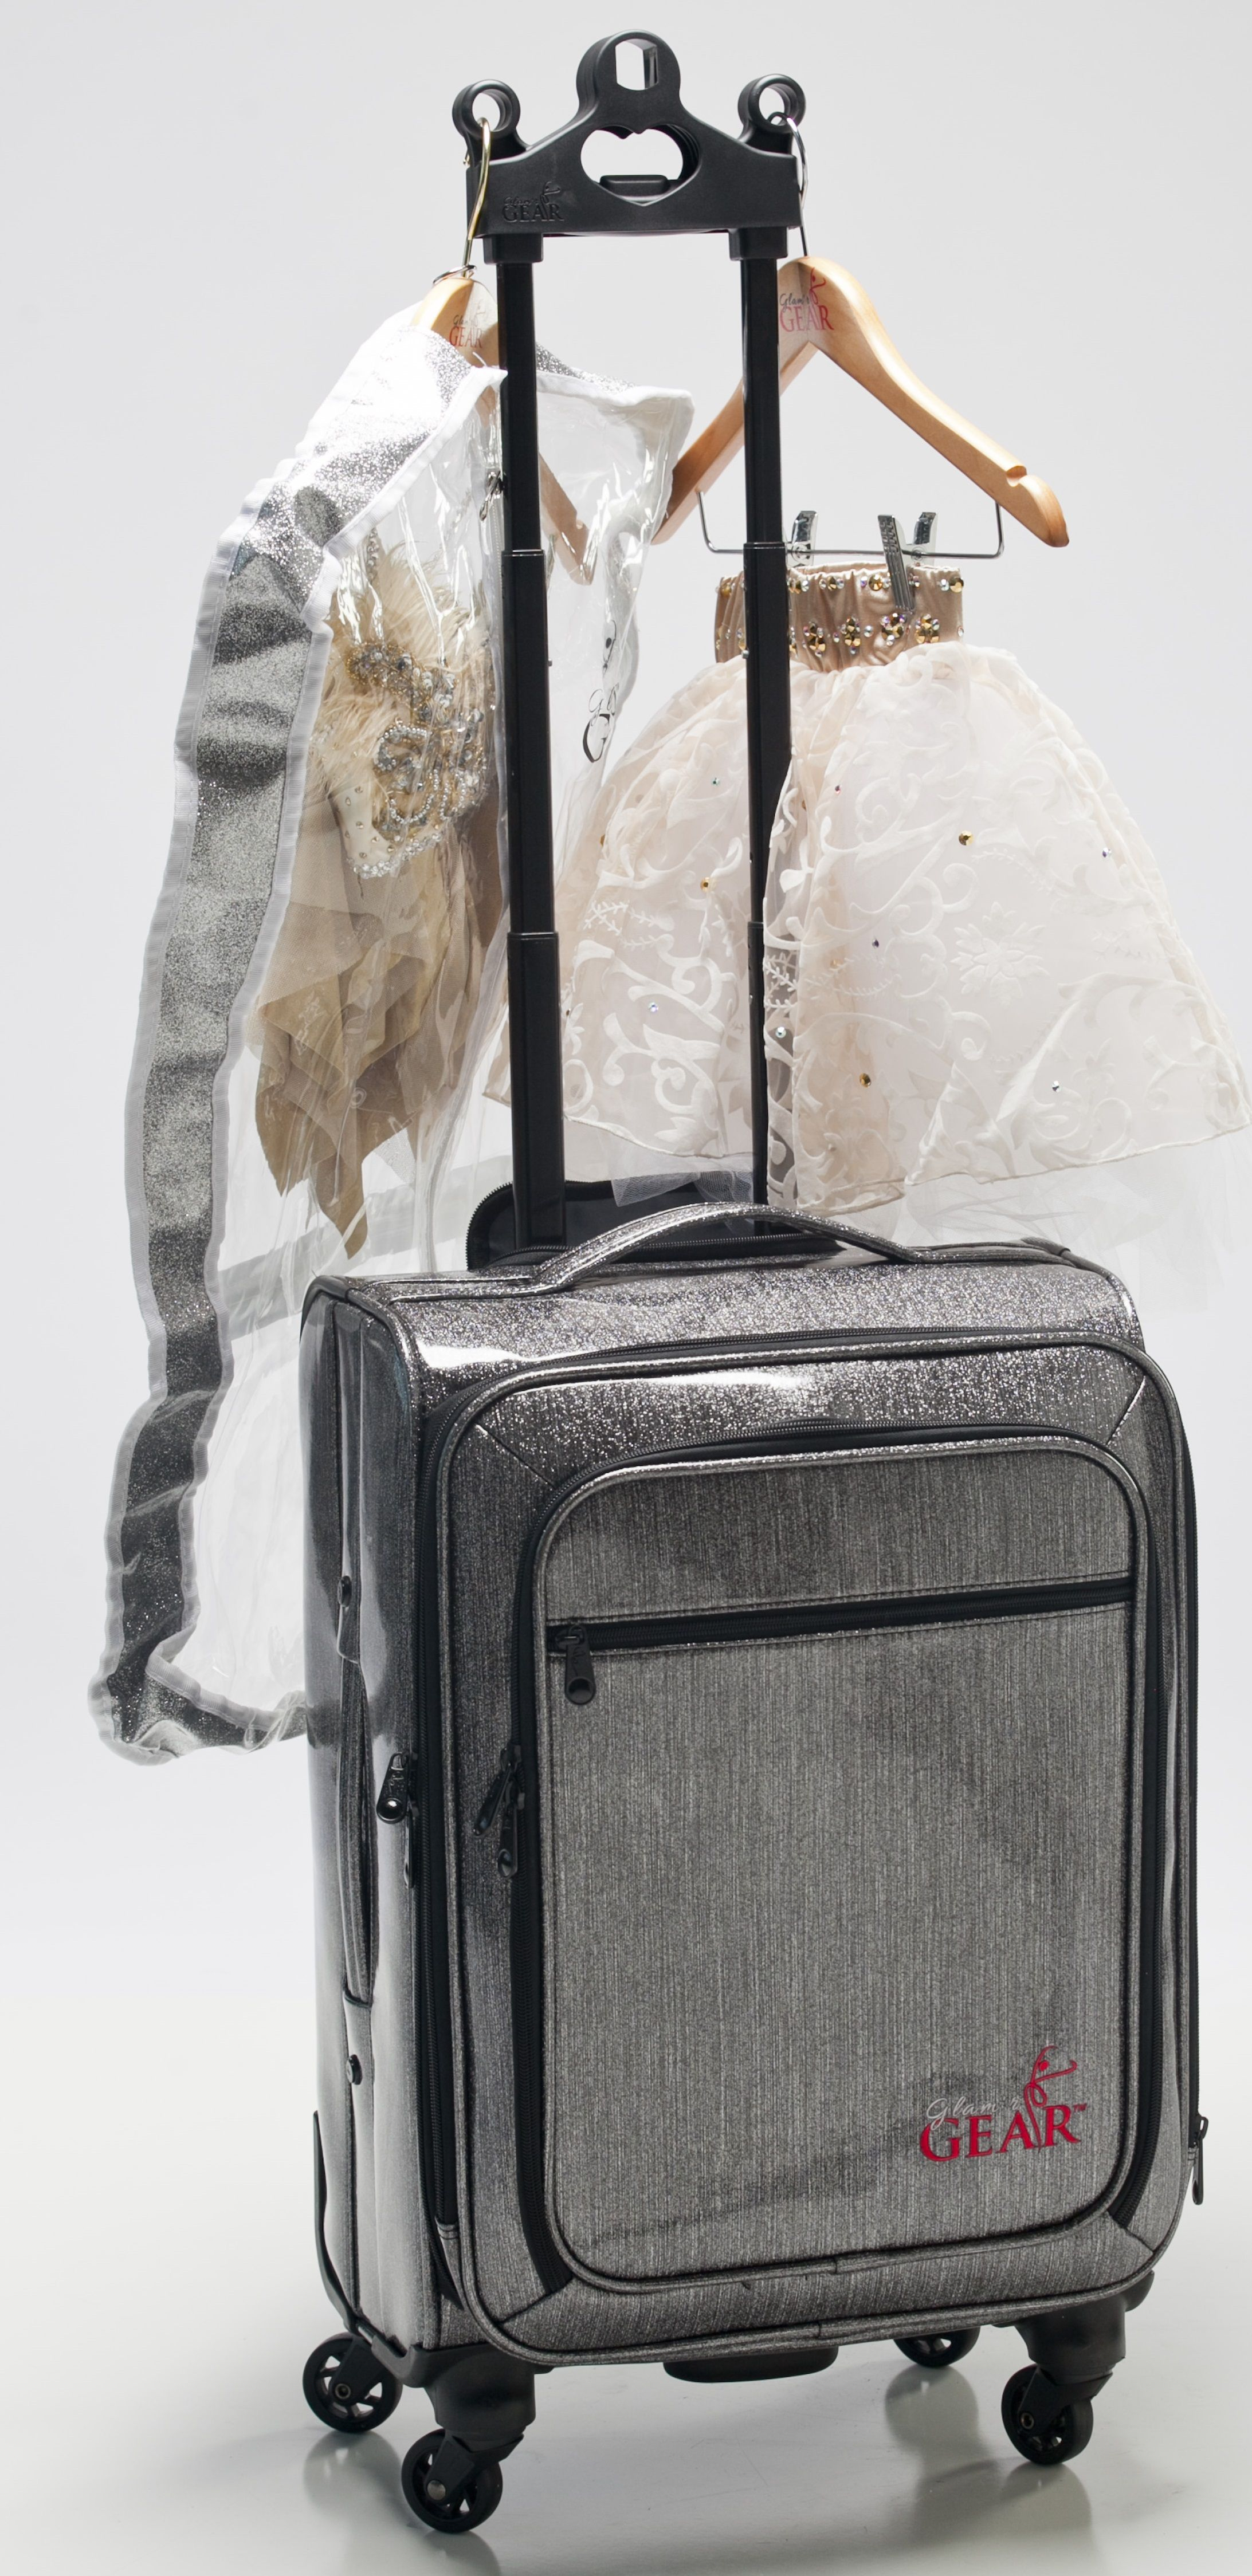 Glam R Gear Solo Dance Bag The Newest Line Of Rolling Bags With Rack For Company Designed To Hold 1 3 Costumes A Carry On Twist